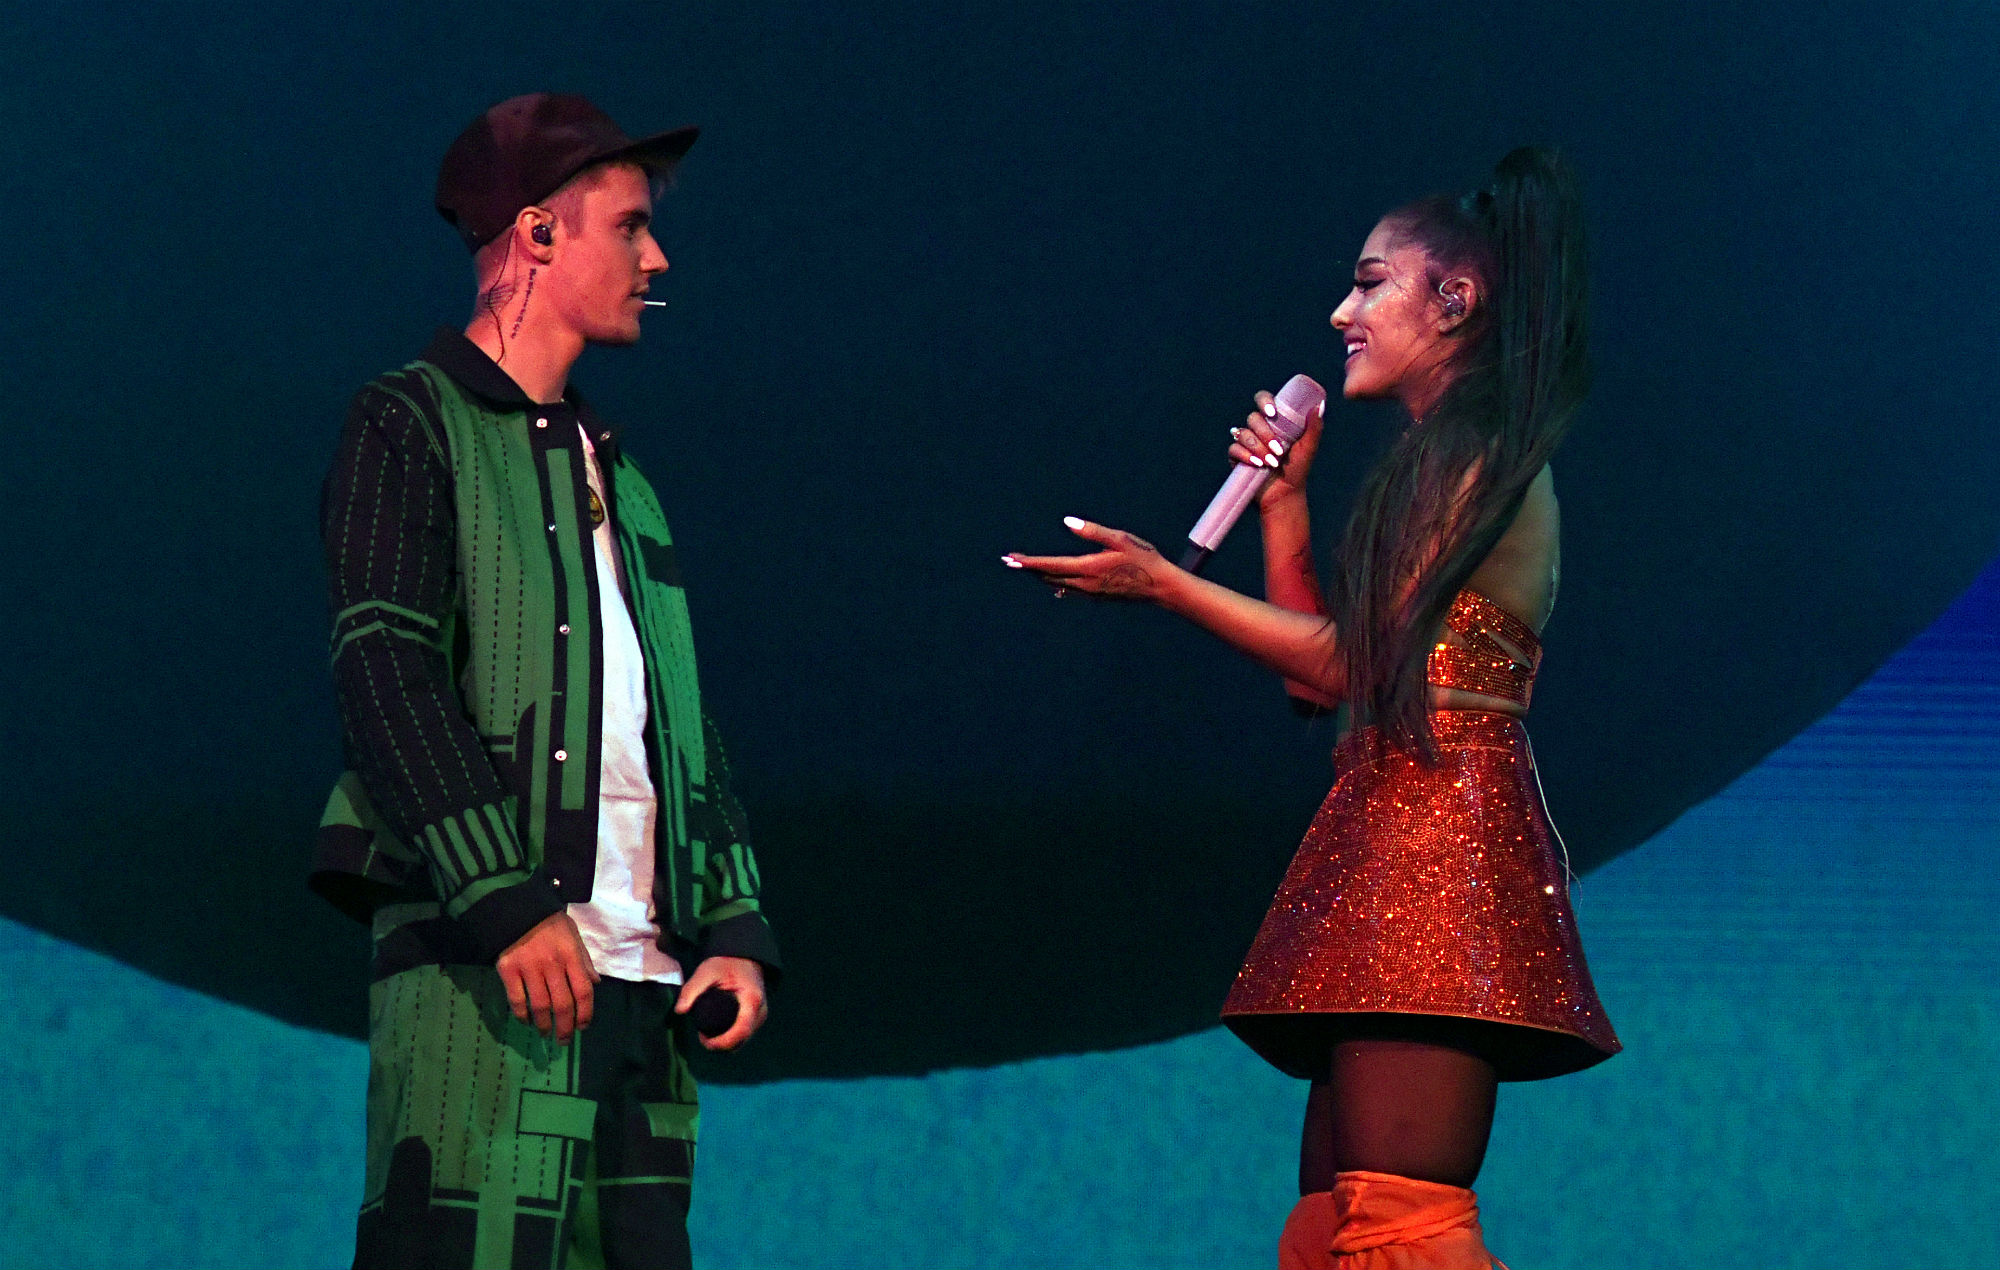 Justin Bieber decided to return to music after performing with Ariana Grande at Coachella